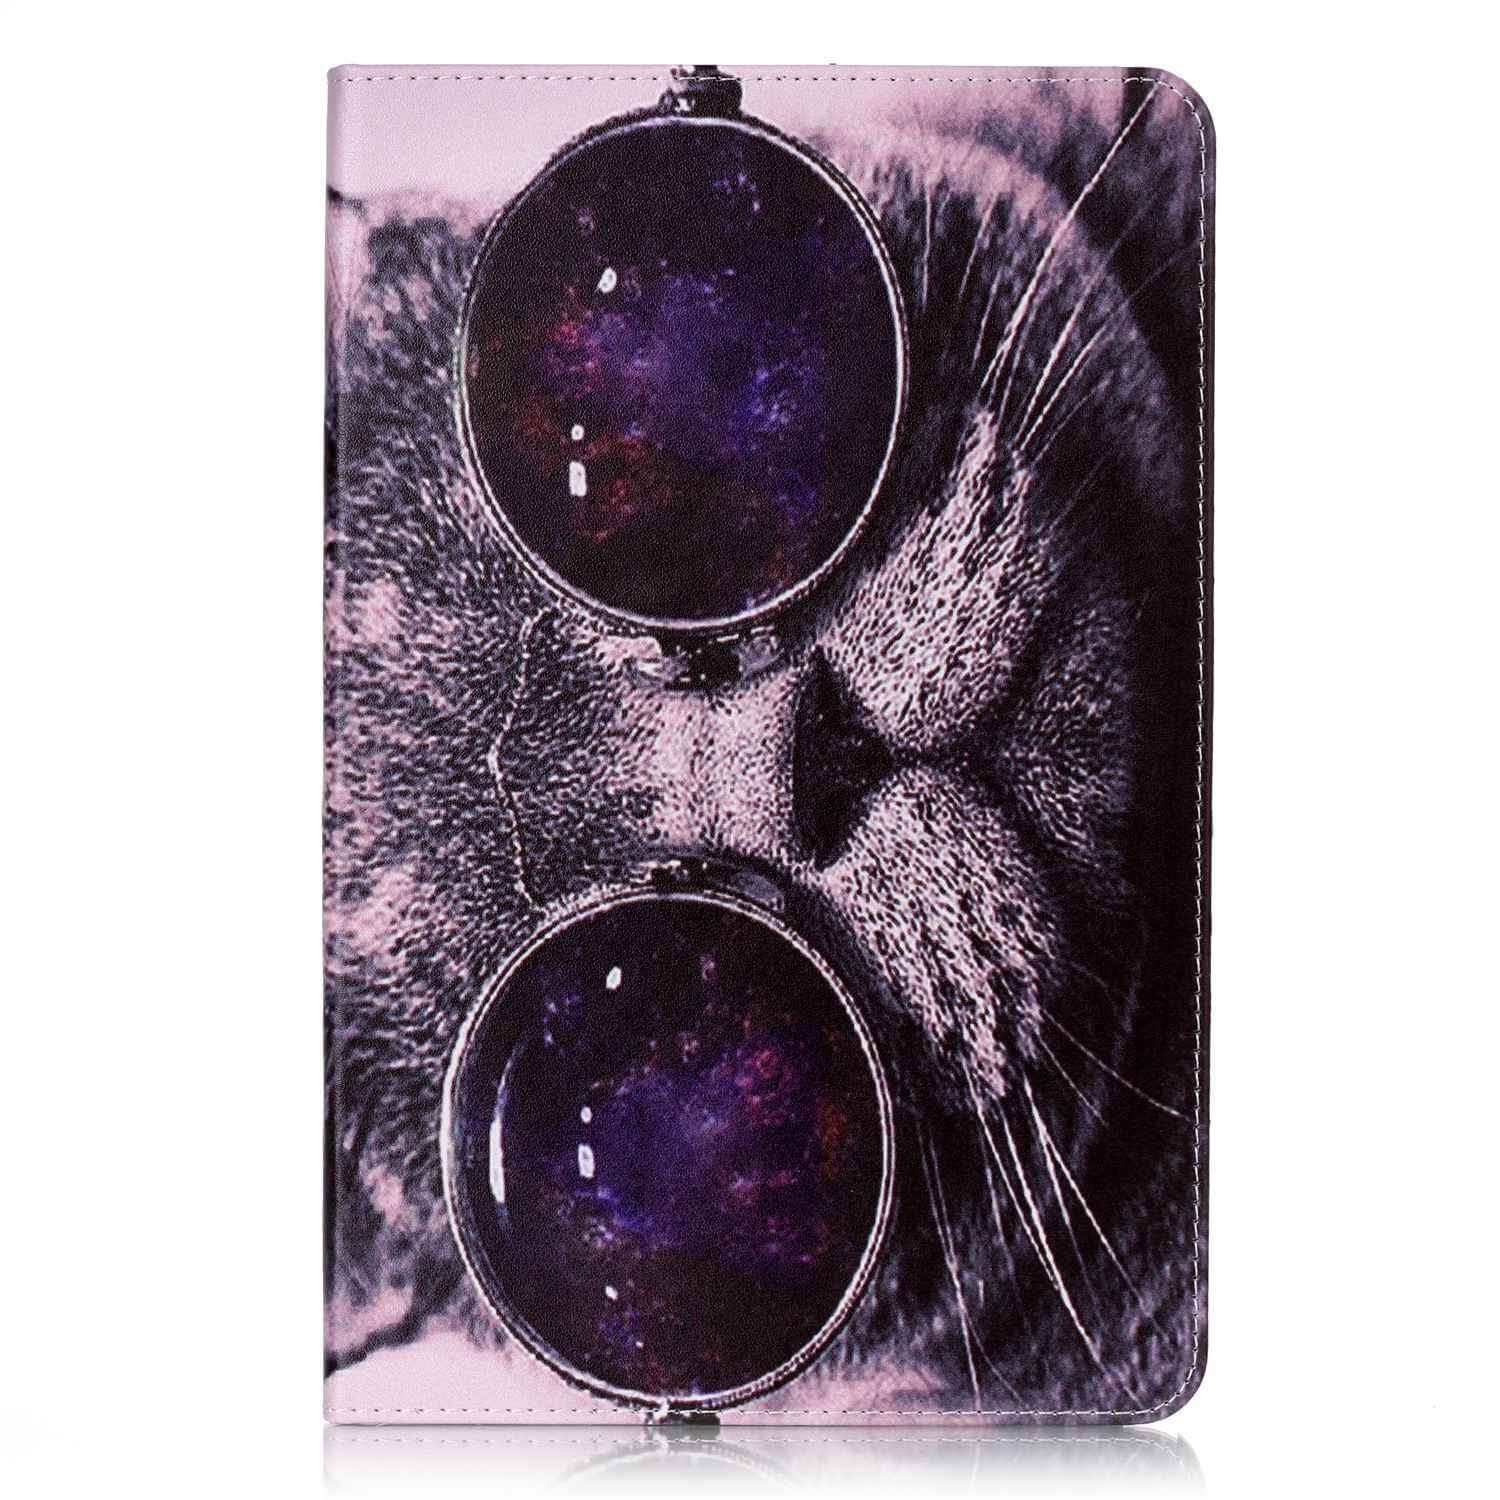 galaxy tab a 10 1 s pen 2016 case with a wide selection of images and 2 stand 7: